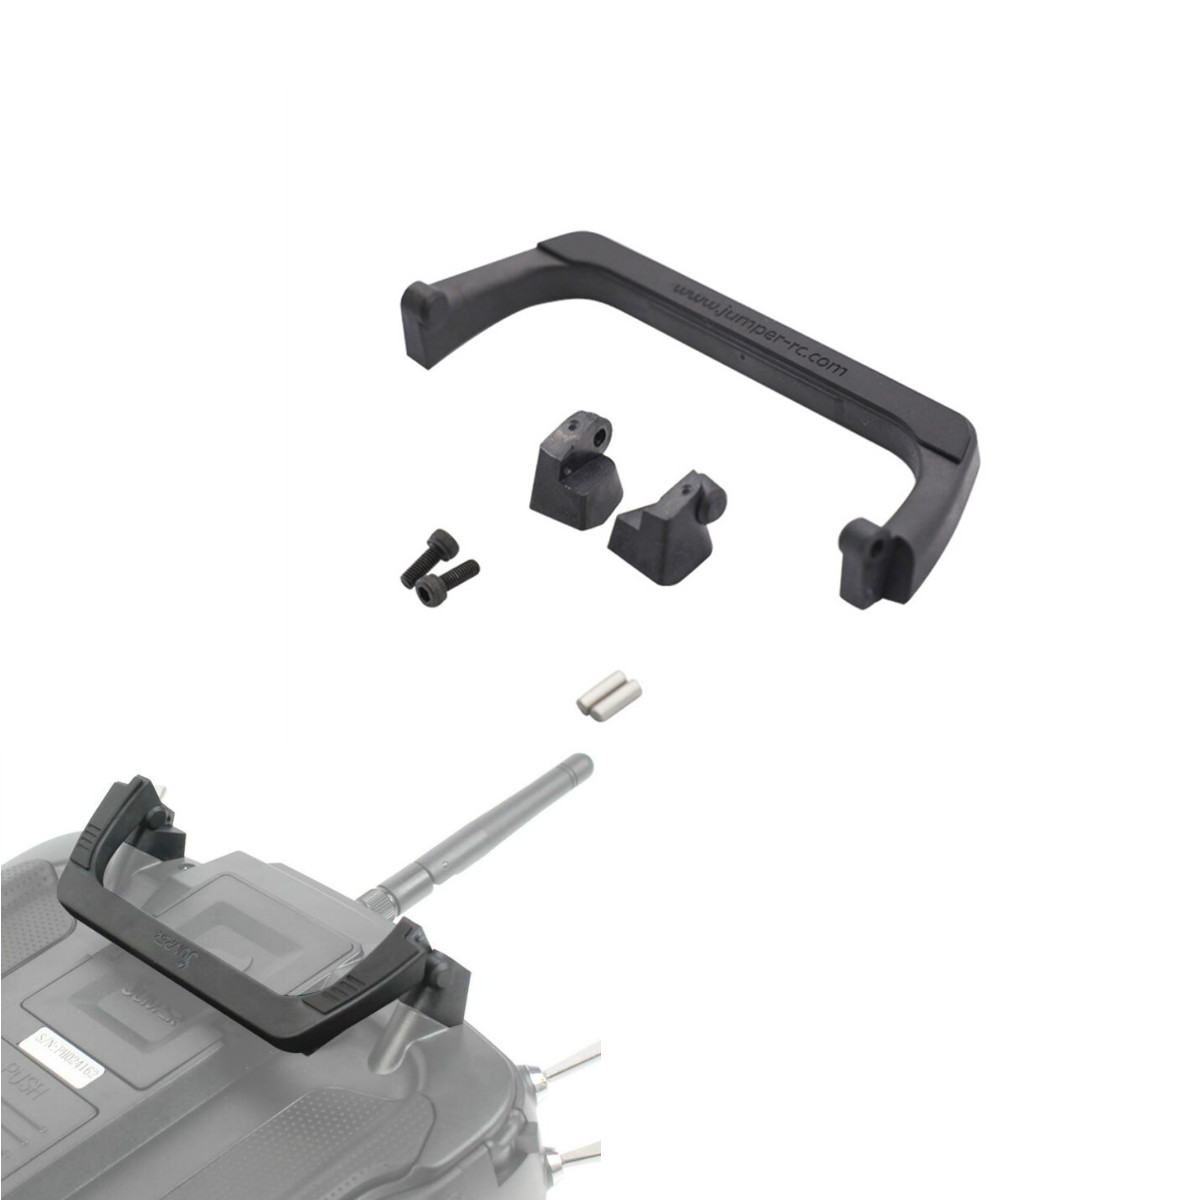 Jumper T16 T18 Upgrade Folding Handle For T16, T16 Plus, T16 Pro Handle Spare Parts For Transmitter Radios